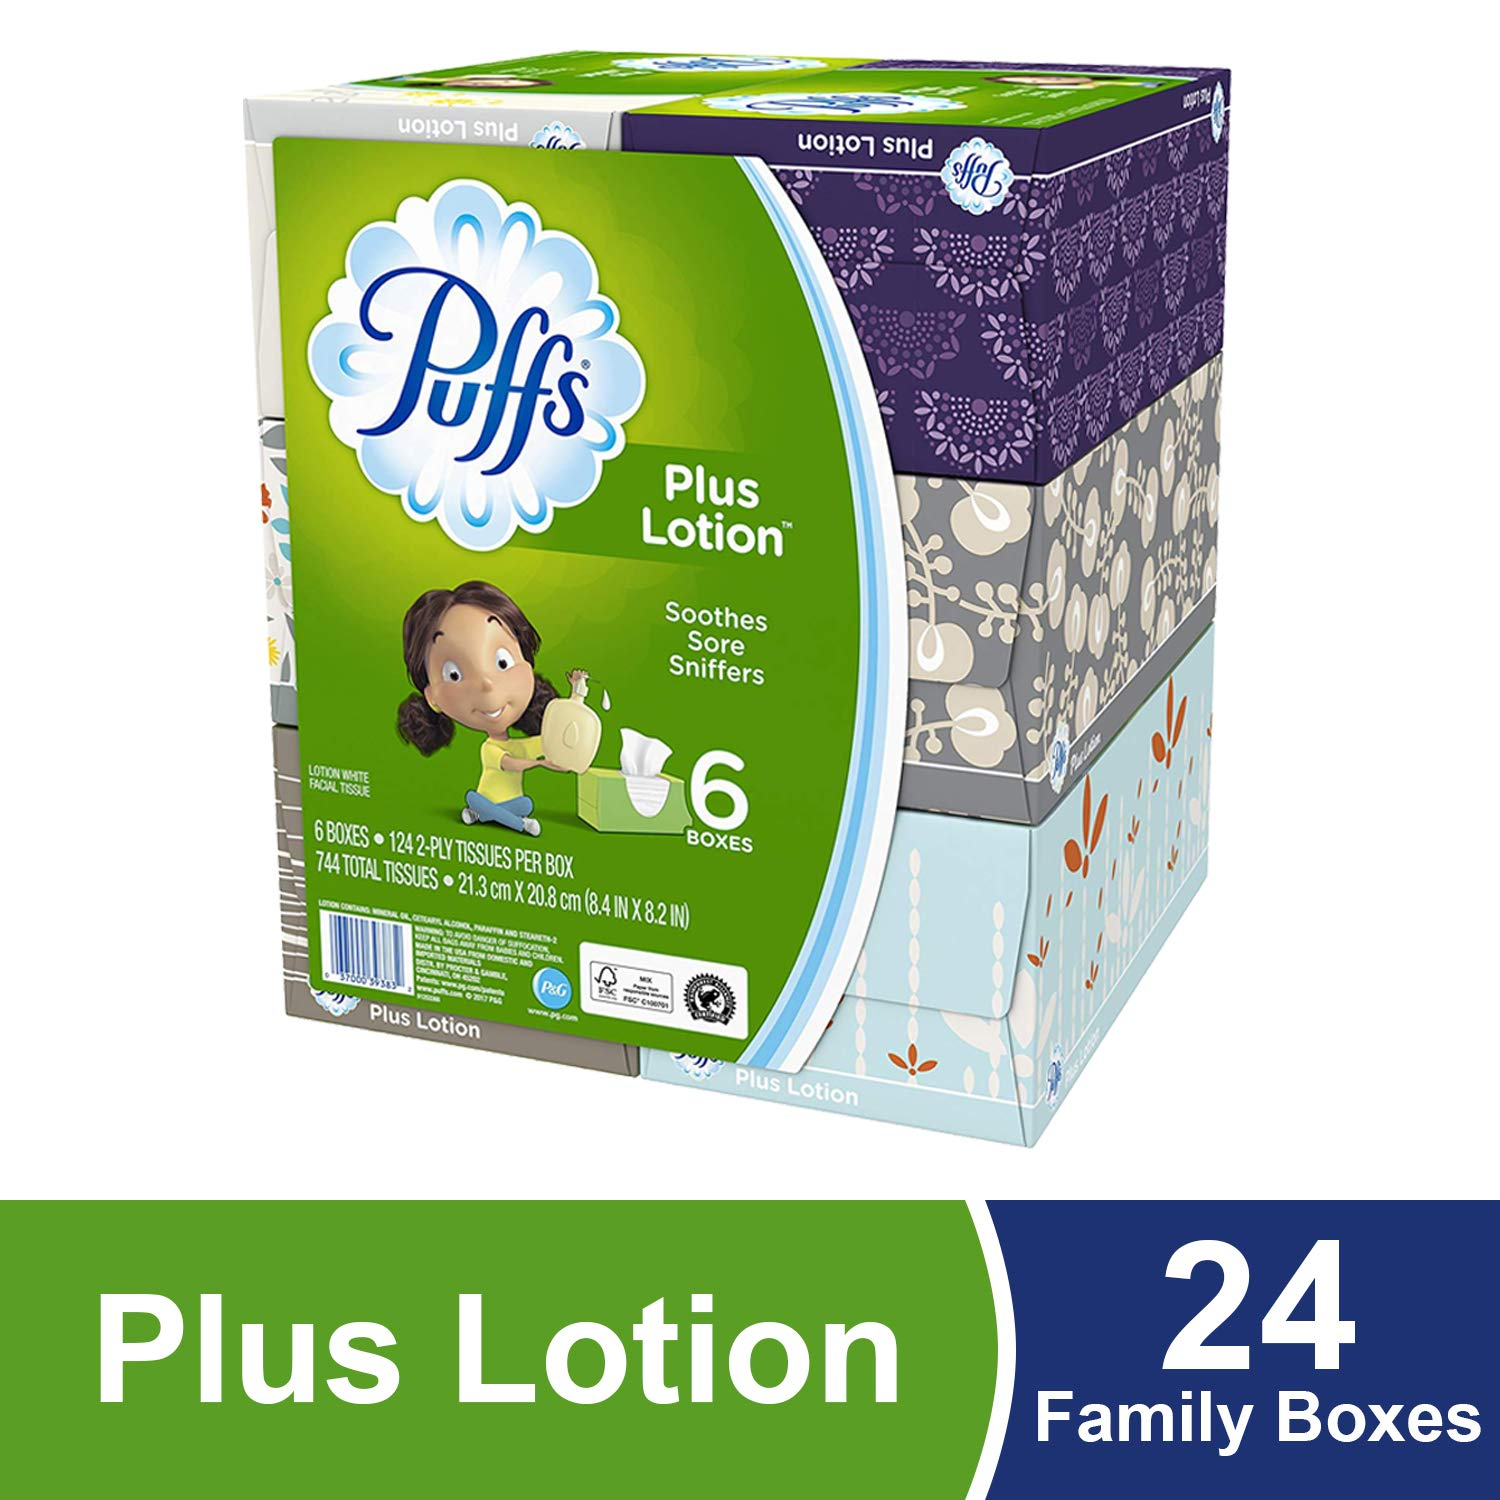 Puffs Plus Lotion Facial Tissues, 24 Family Boxes, 124 Tissues per Box product image